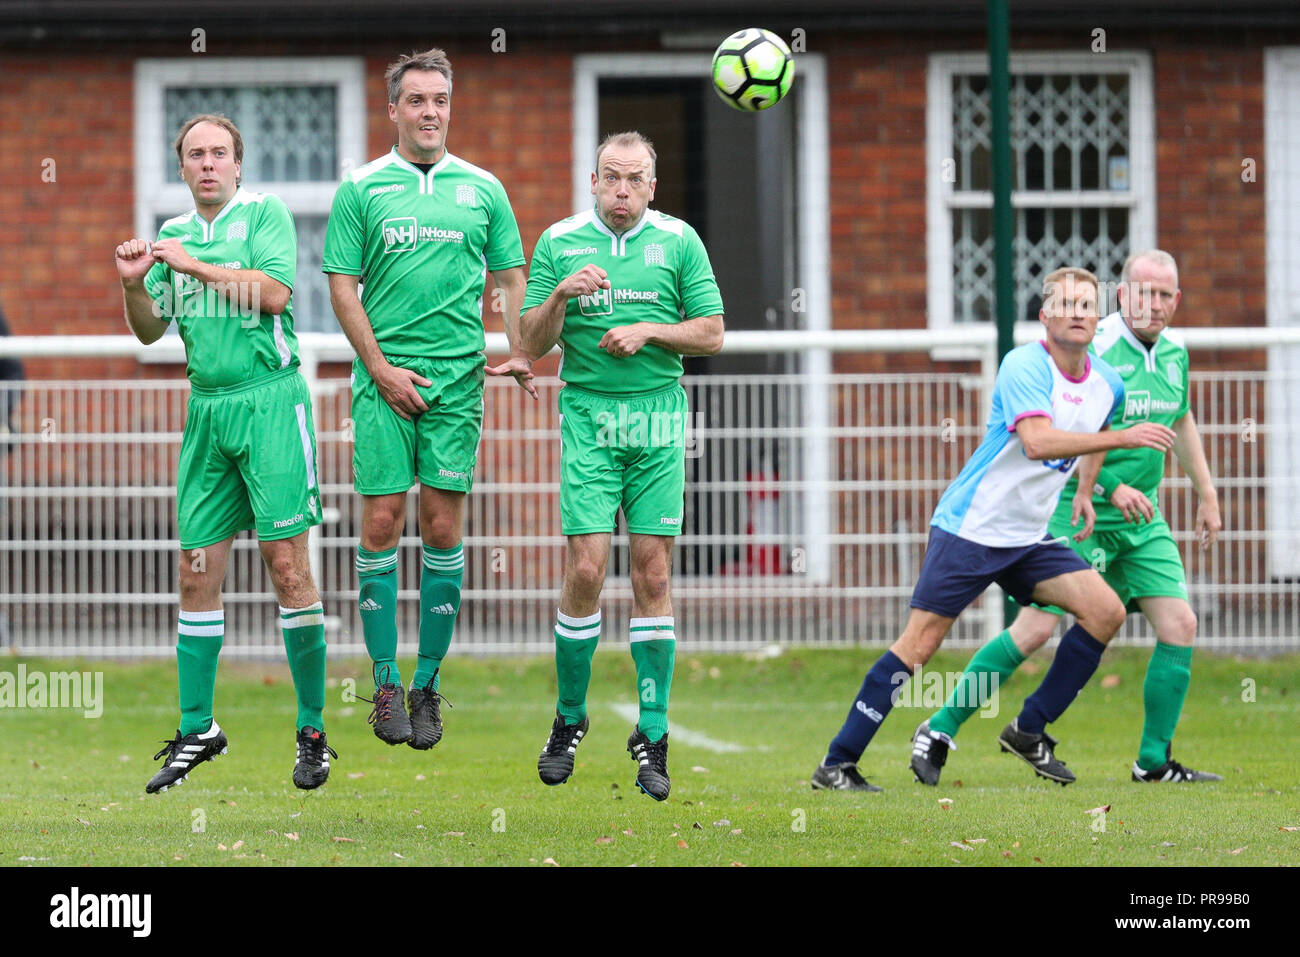 Health and Social Care Secretary Matt Hancock (right) during the  Journalists v MPs football match at